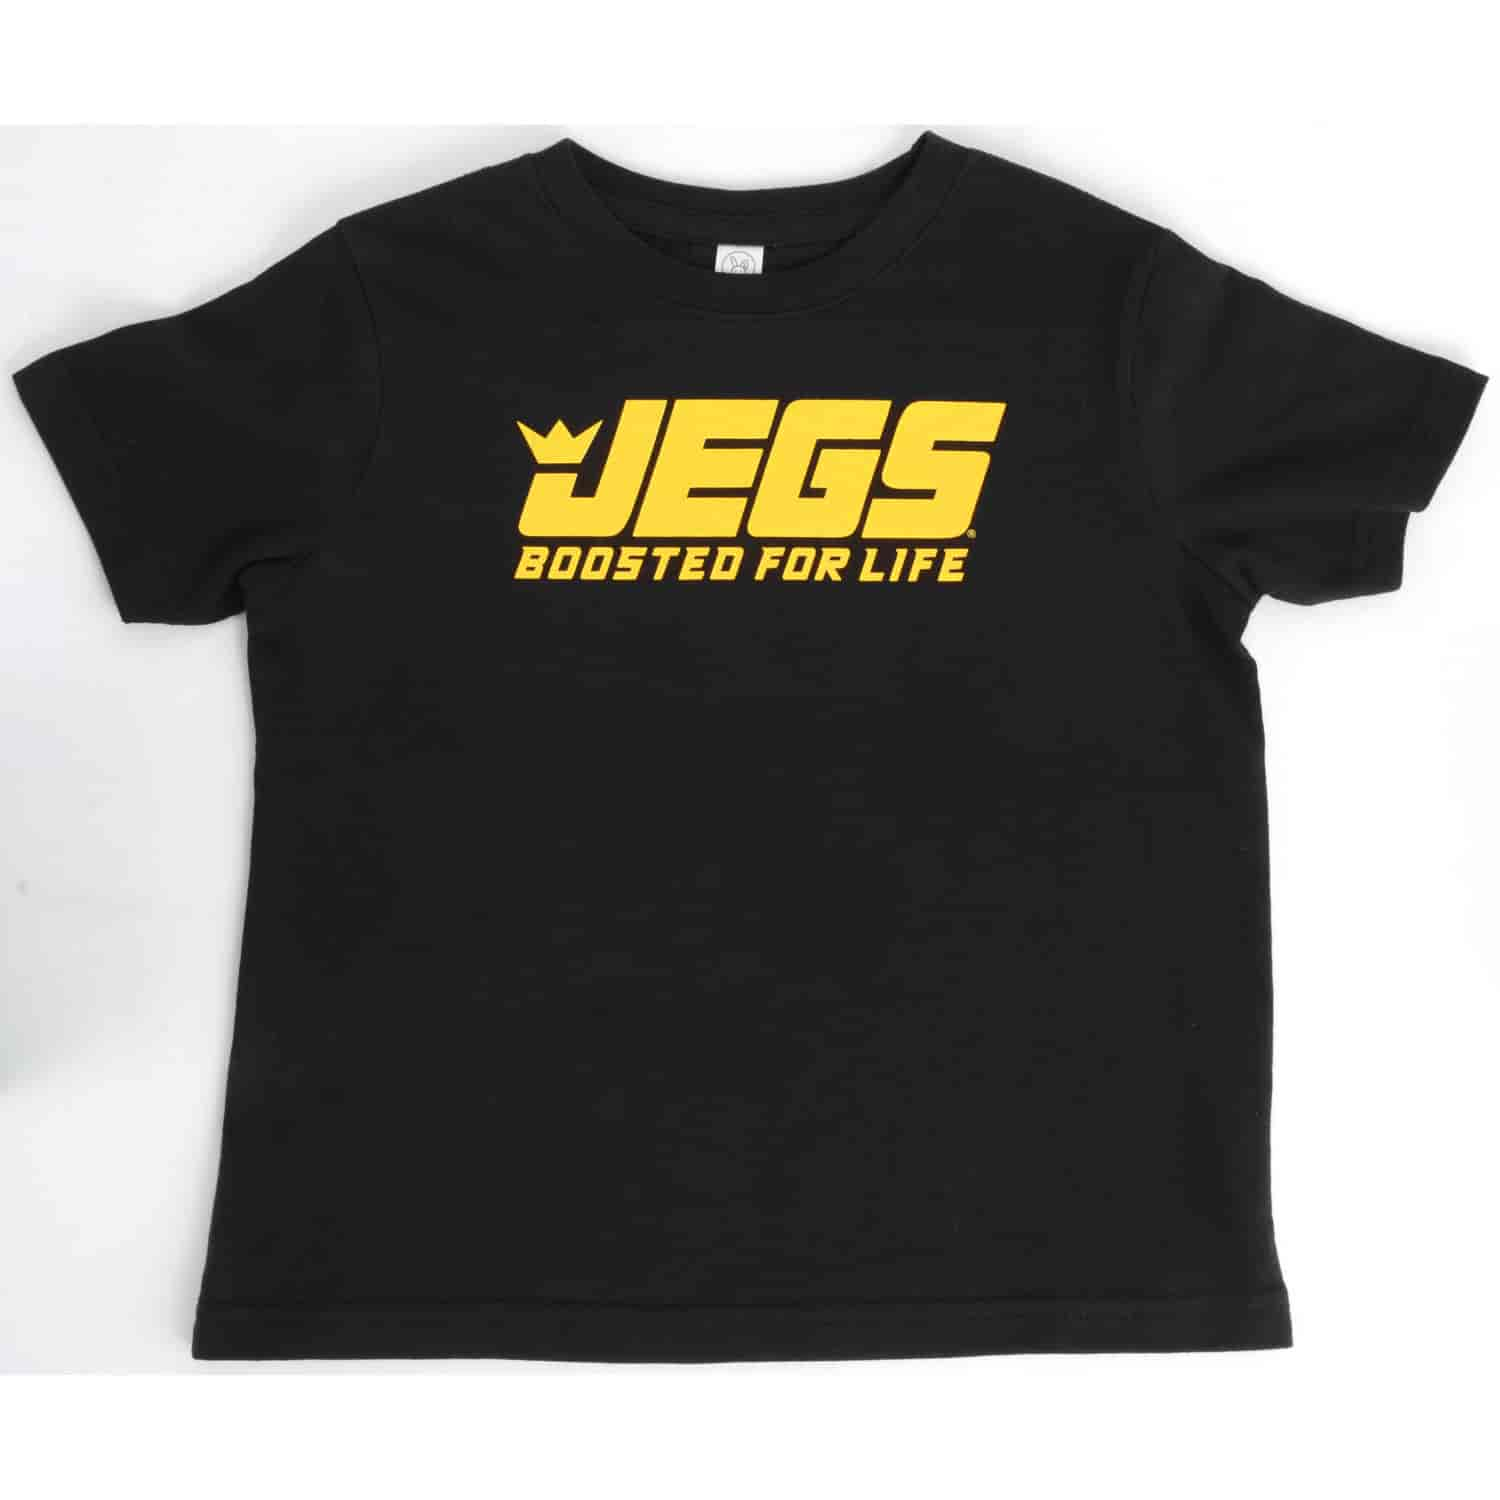 JEGS Apparel and Collectibles 16033